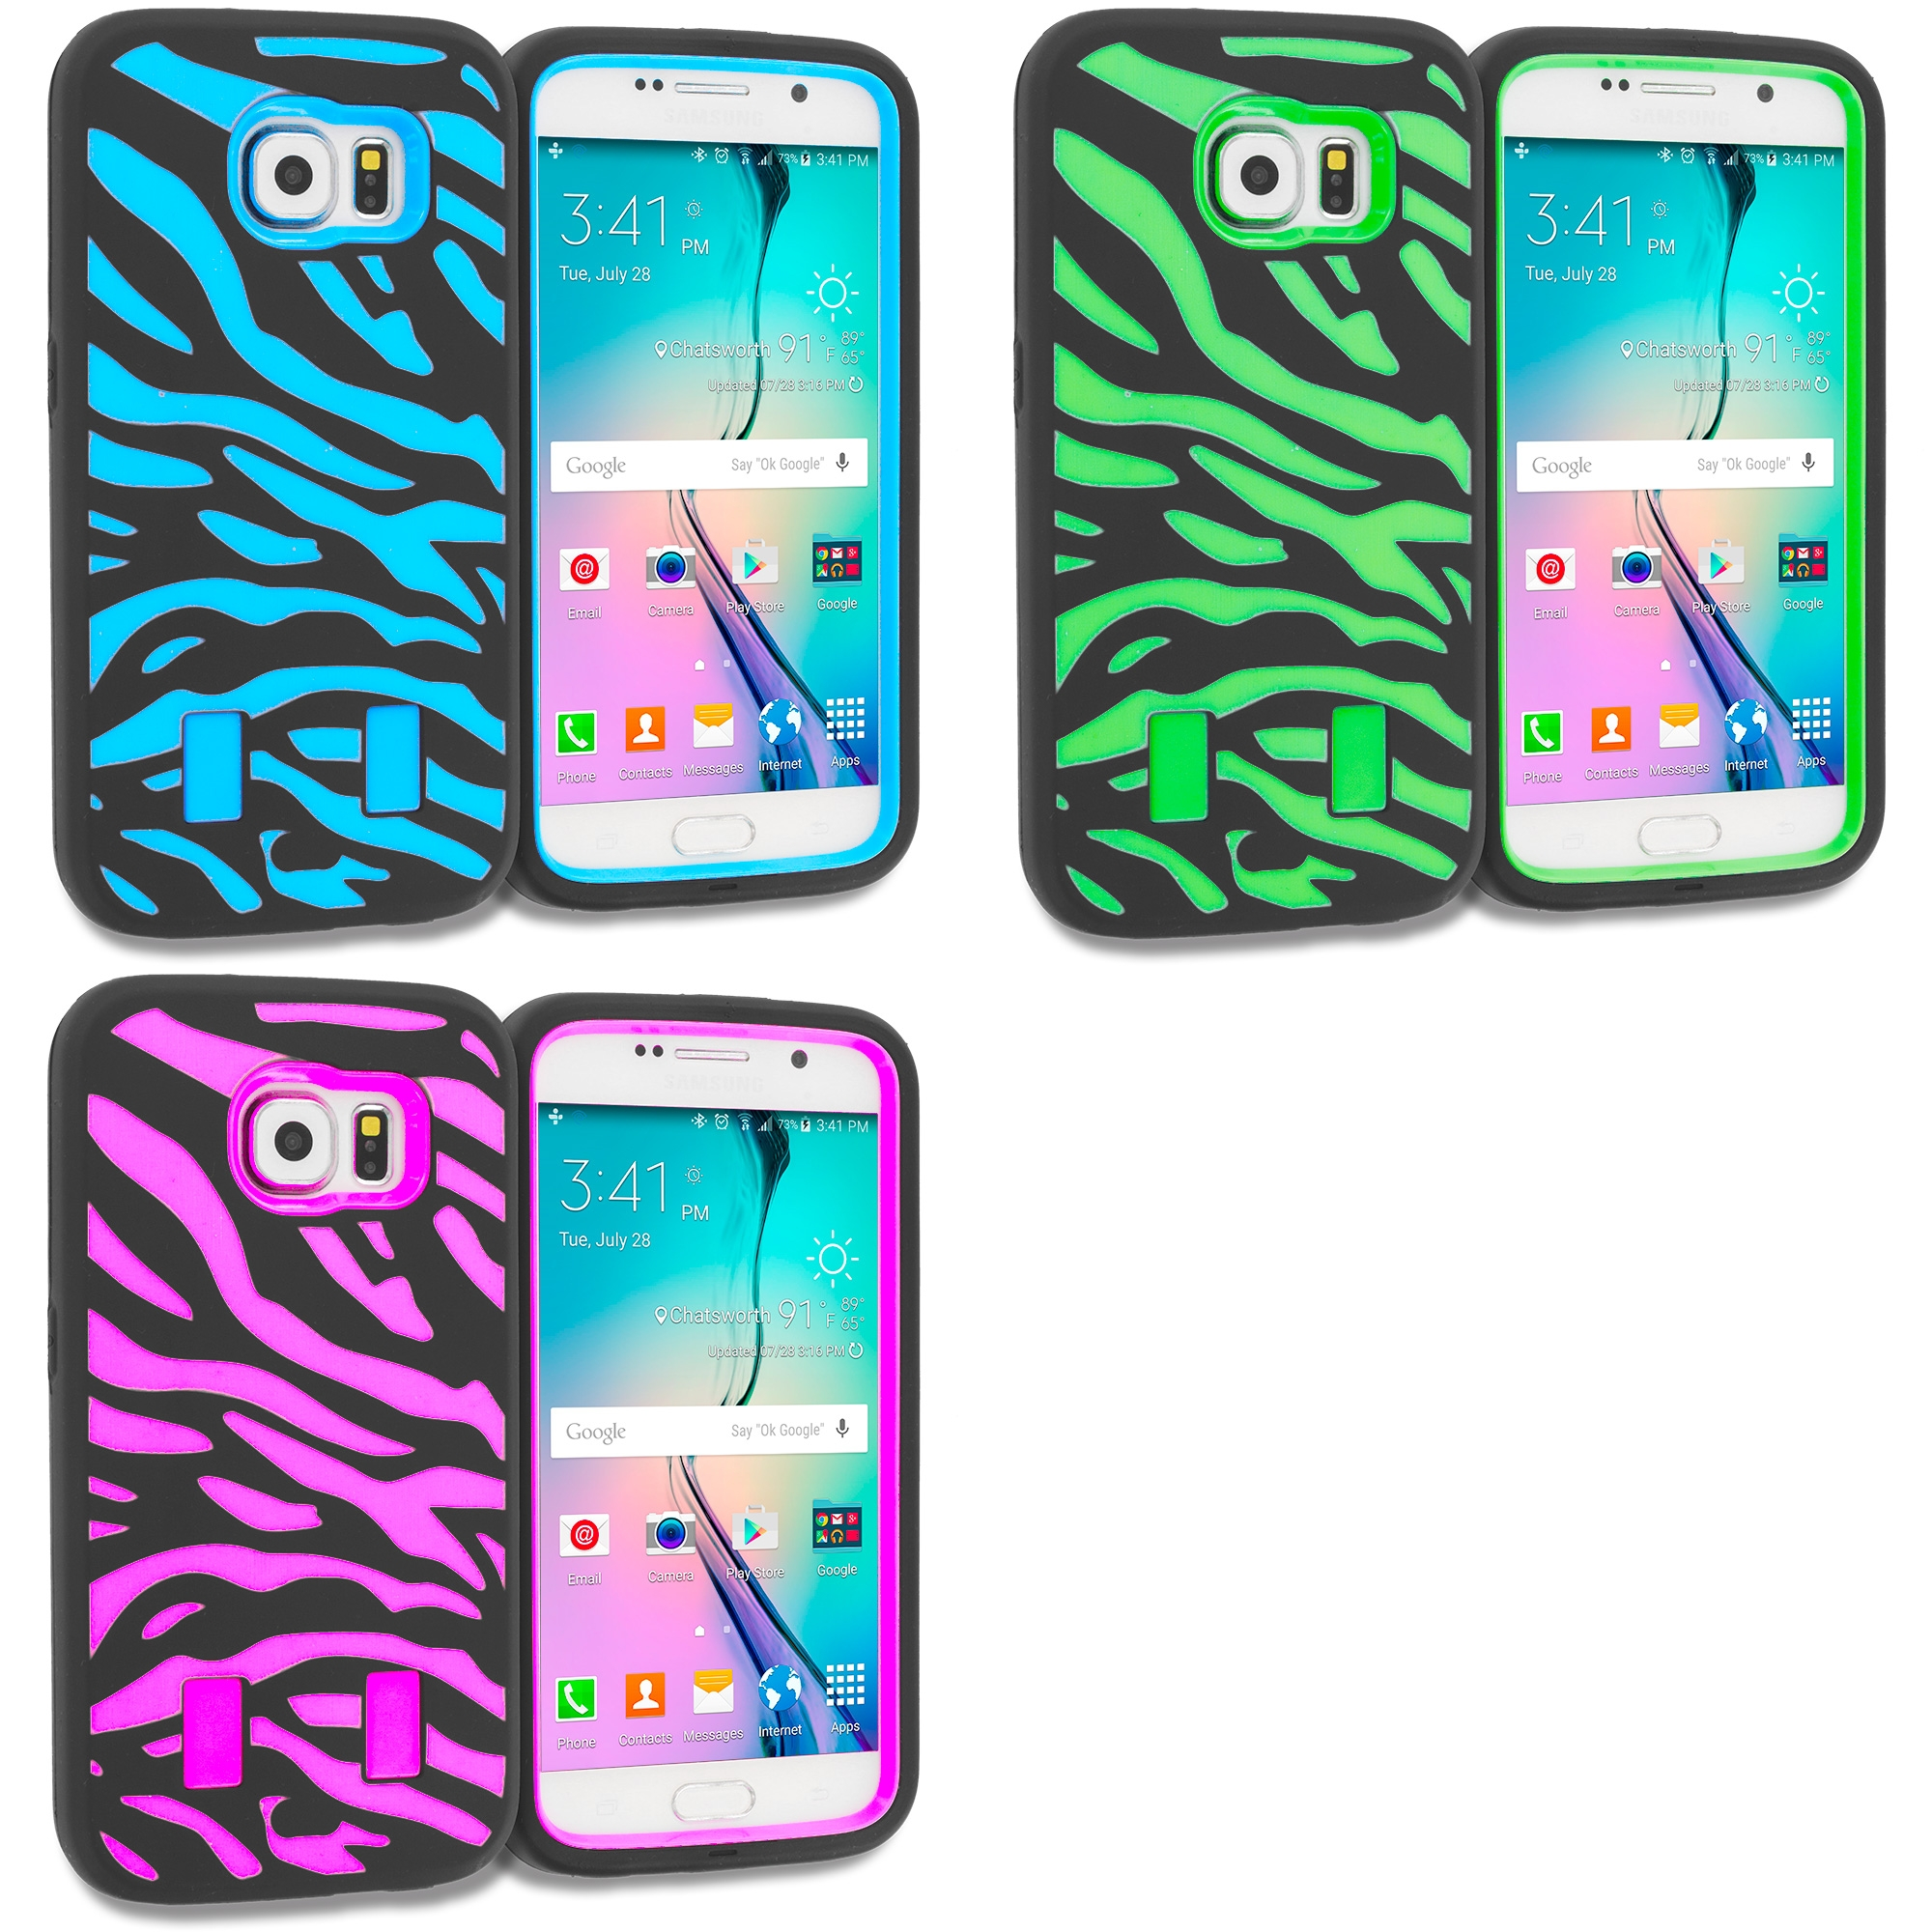 Samsung Galaxy S6 Combo Pack : Black Baby Blue Hybrid Zebra Hard/Soft Case Cover